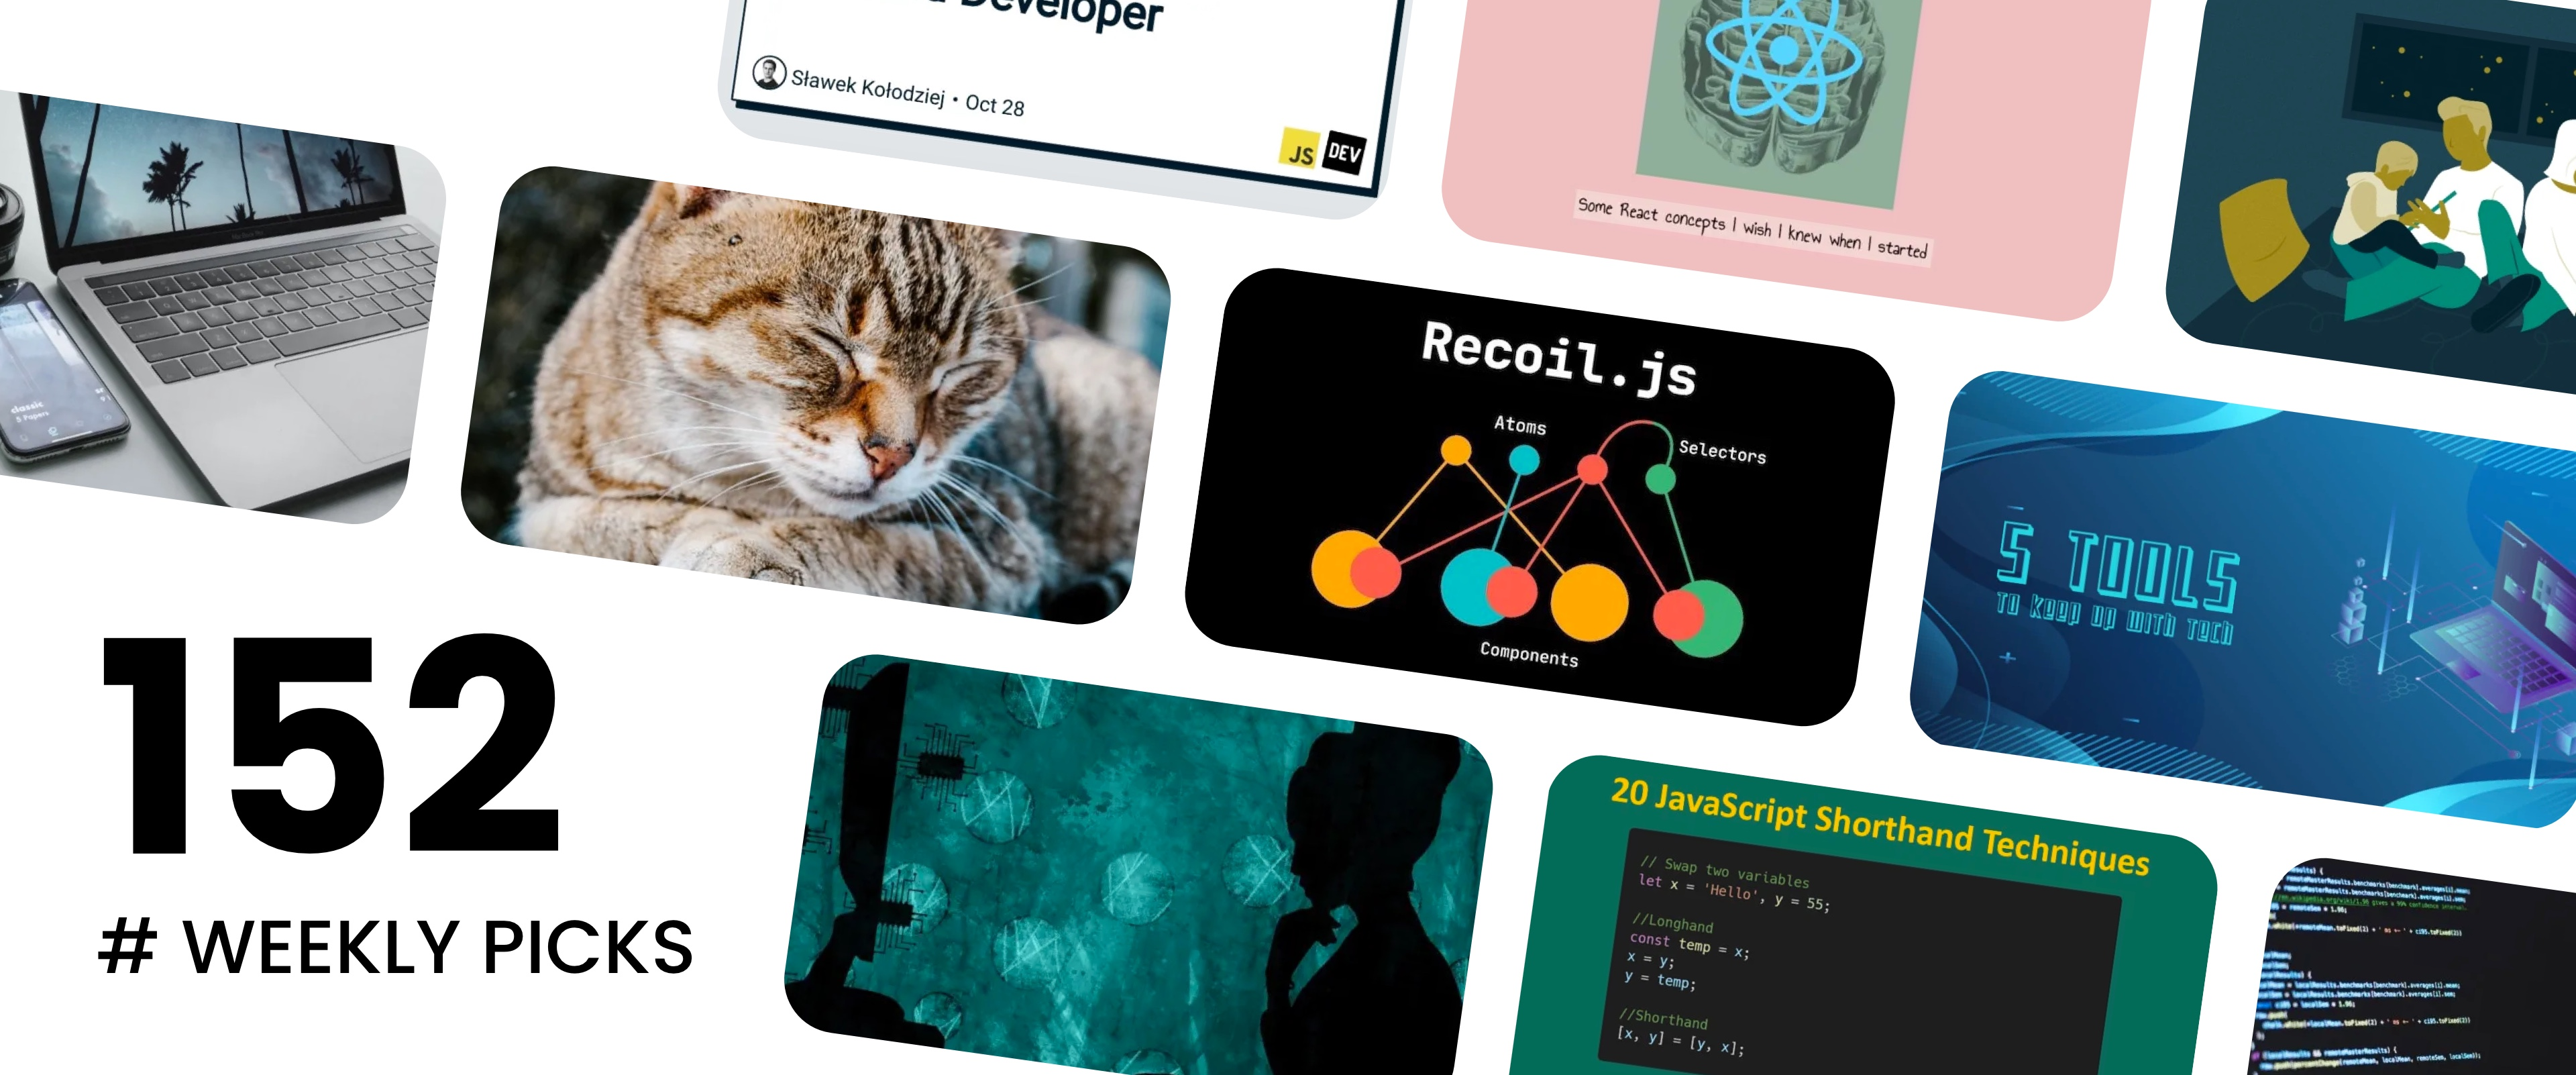 🔥 What's Hot in Web Development? — Weekly Picks #152